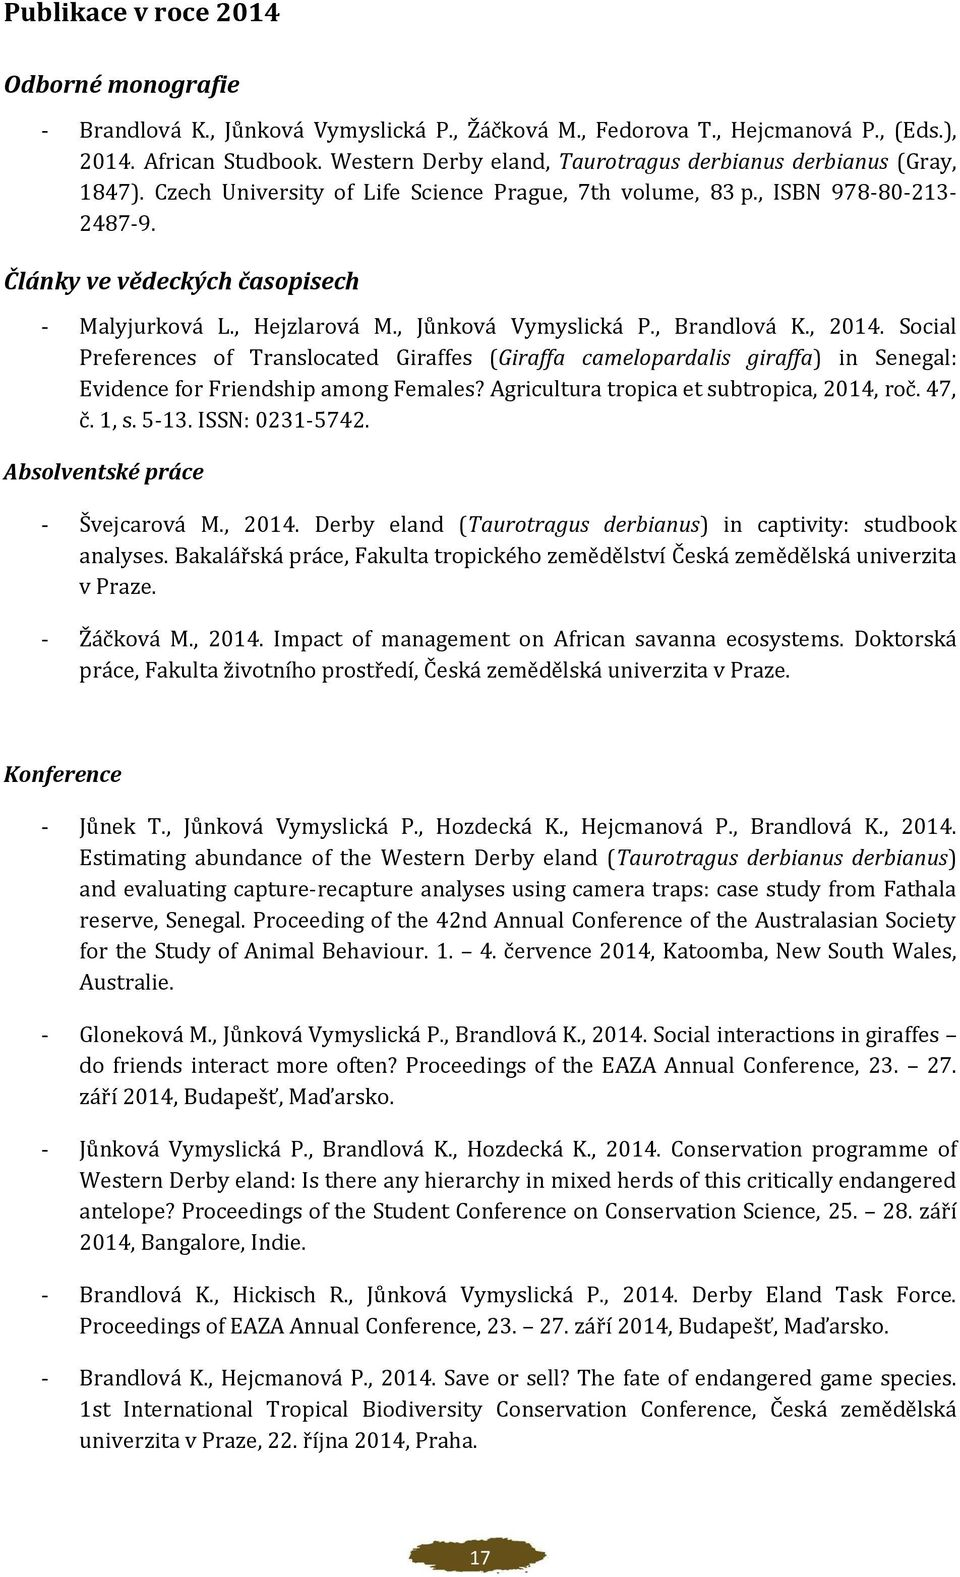 , Hejzlarová M., Jůnková Vymyslická P., Brandlová K., 2014. Social Preferences of Translocated Giraffes (Giraffa camelopardalis giraffa) in Senegal: Evidence for Friendship among Females?